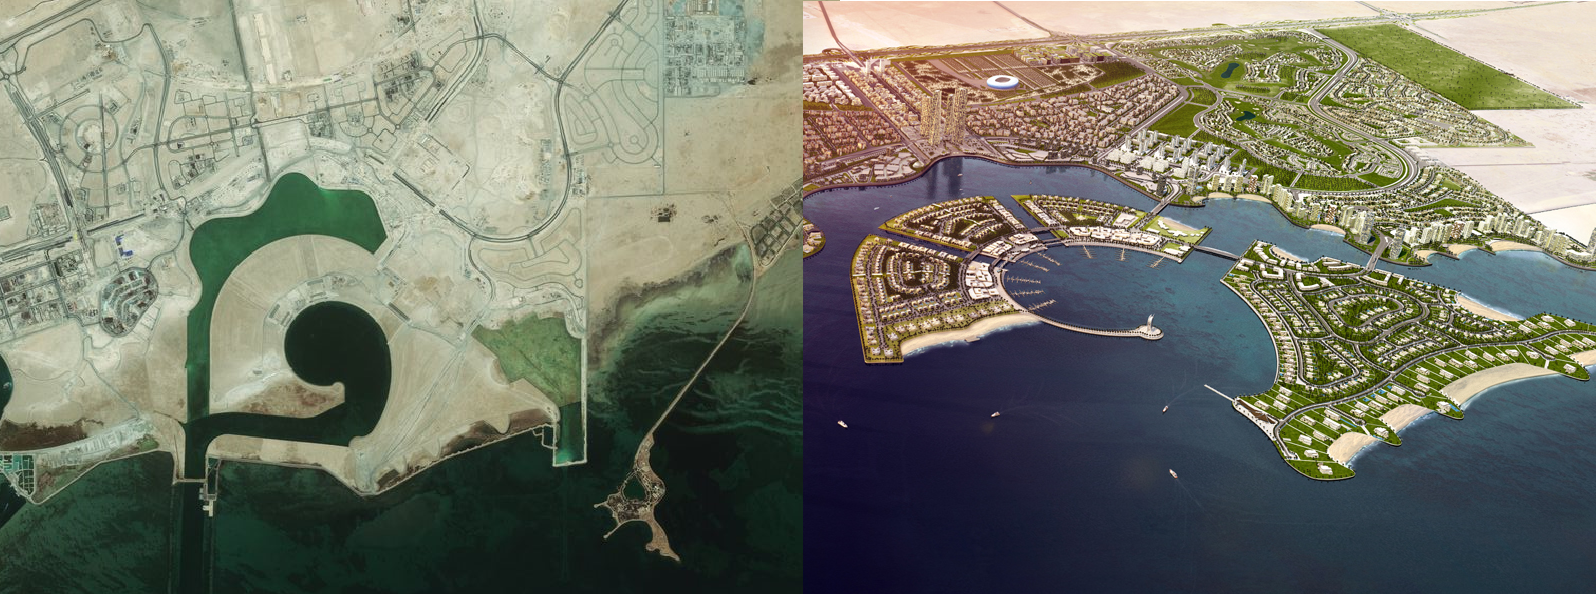 Lusail City satellite image from May 2015 (Left), Lusail City render (Right)